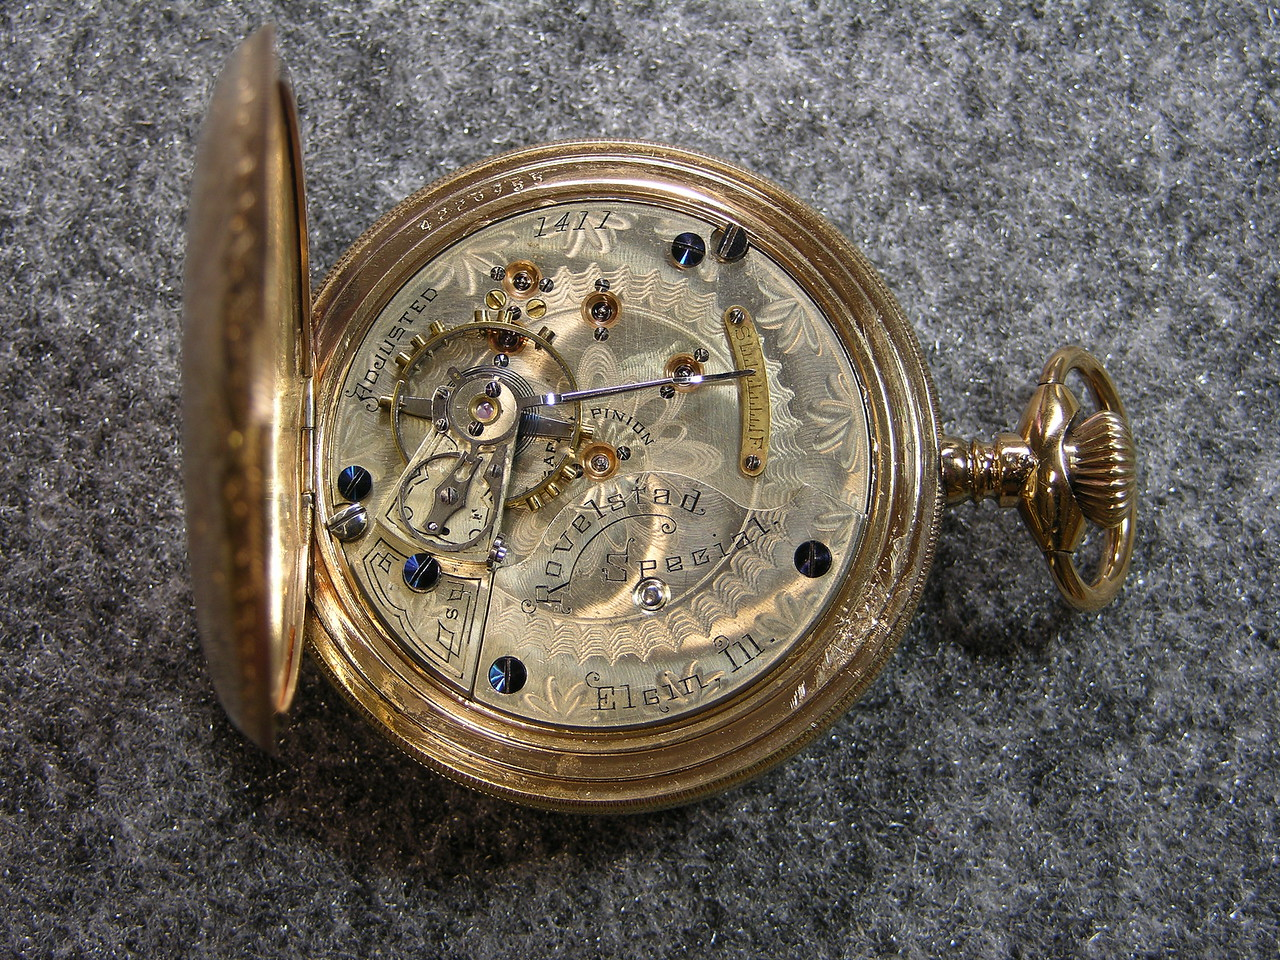 933 movement, SN 1537                            16 jewels, manufactured 1893-1895          total production 650. Sorry! This an Elgin. Will try to find the 933 and replace the picture.